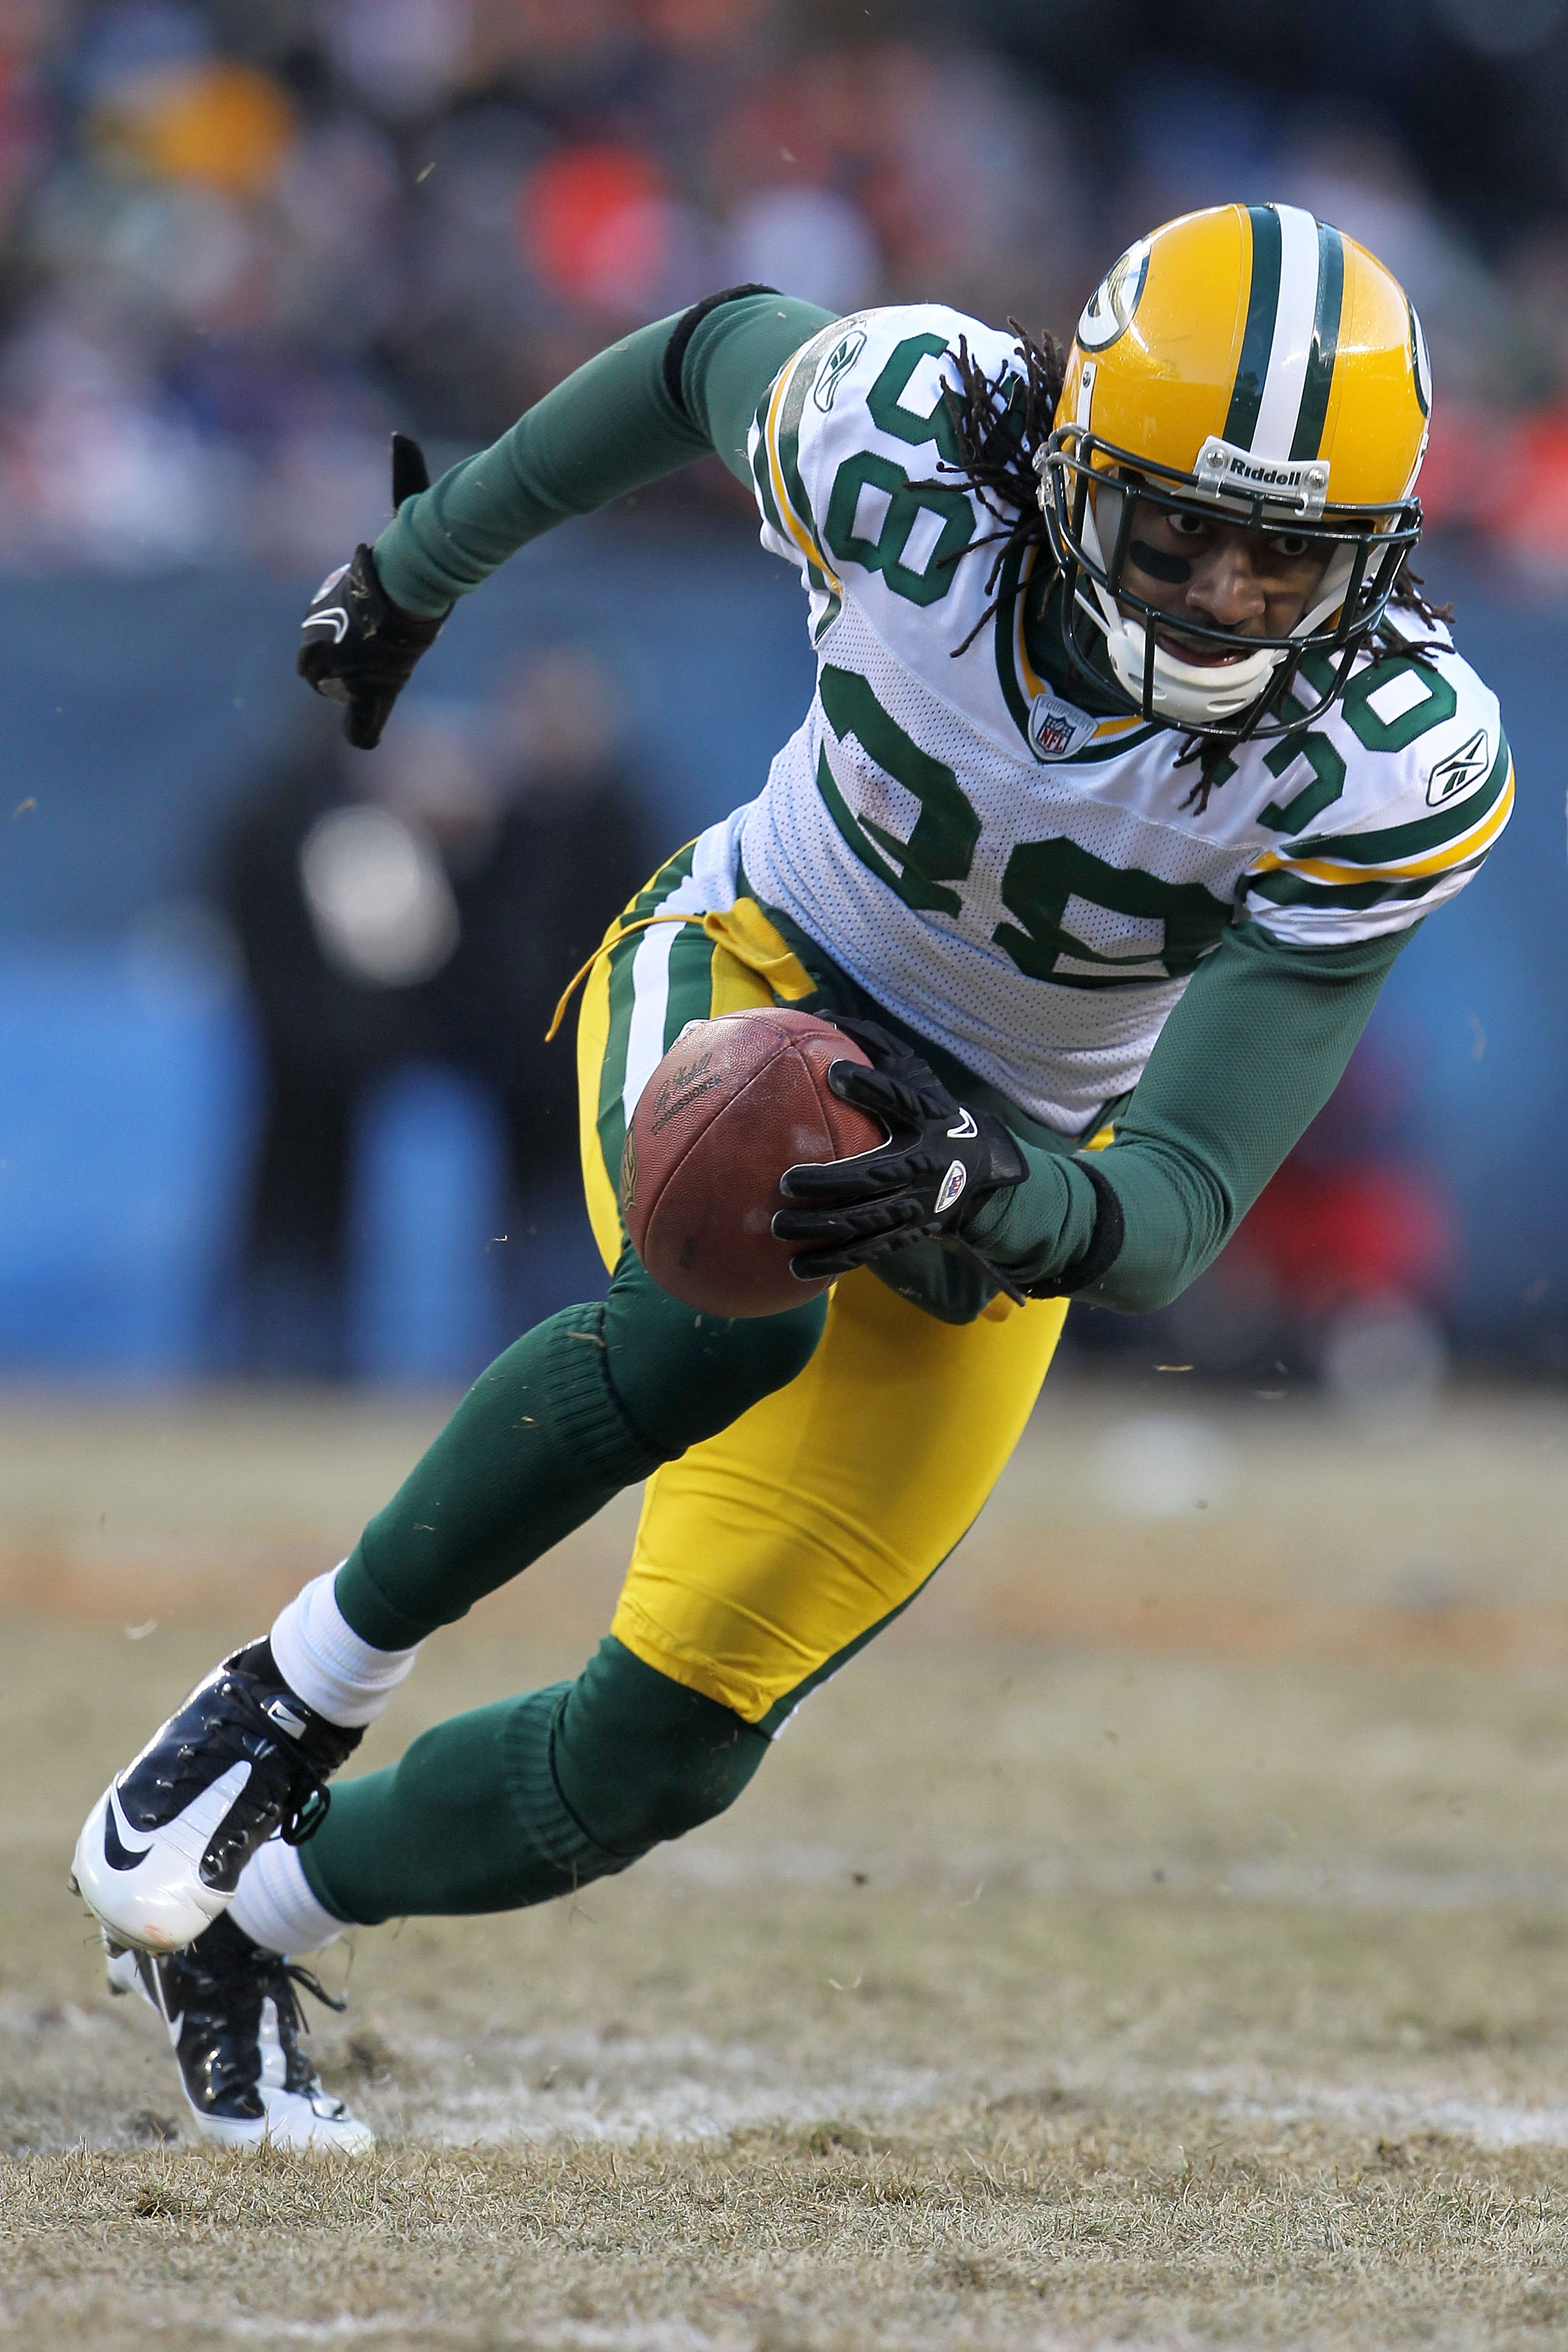 545792317 CHICAGO, IL - JANUARY 23: Tramon Williams #38 of the Green Bay Packers